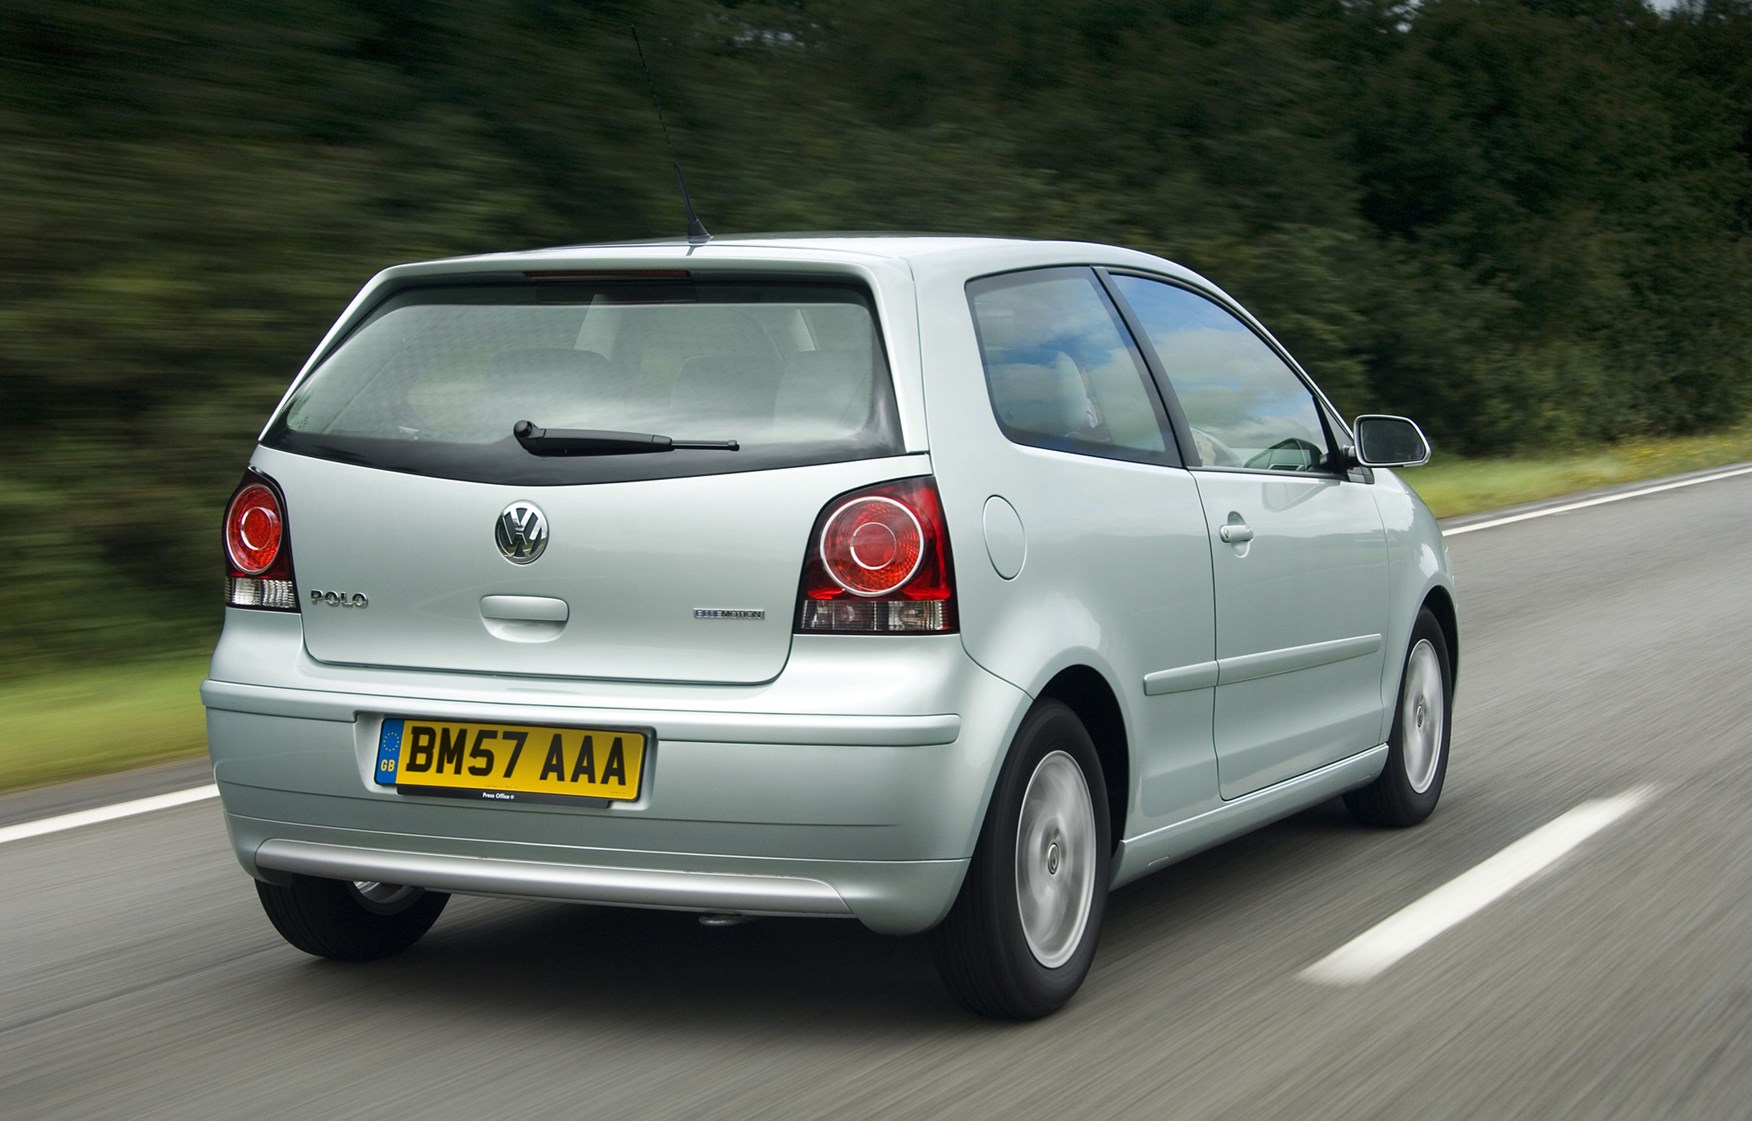 volkswagen polo hatchback review (2002 - 2009) | parkers